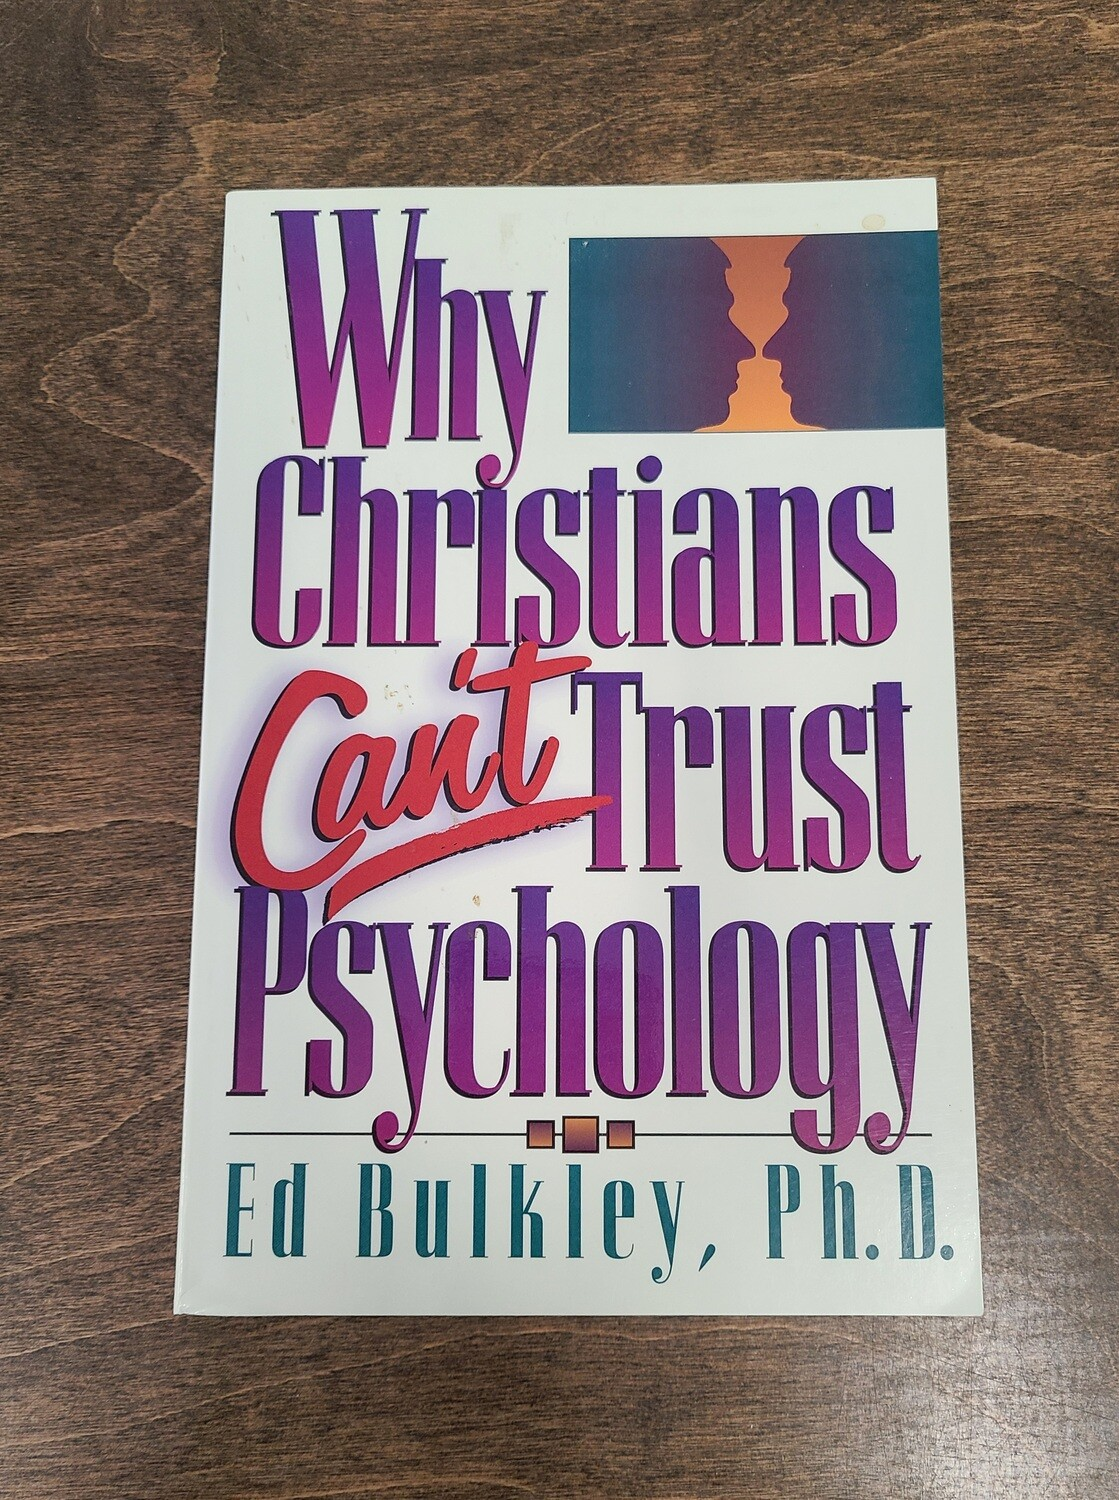 Why Christians Can't Trust Psychology by Ed Bulkley, Ph.D.